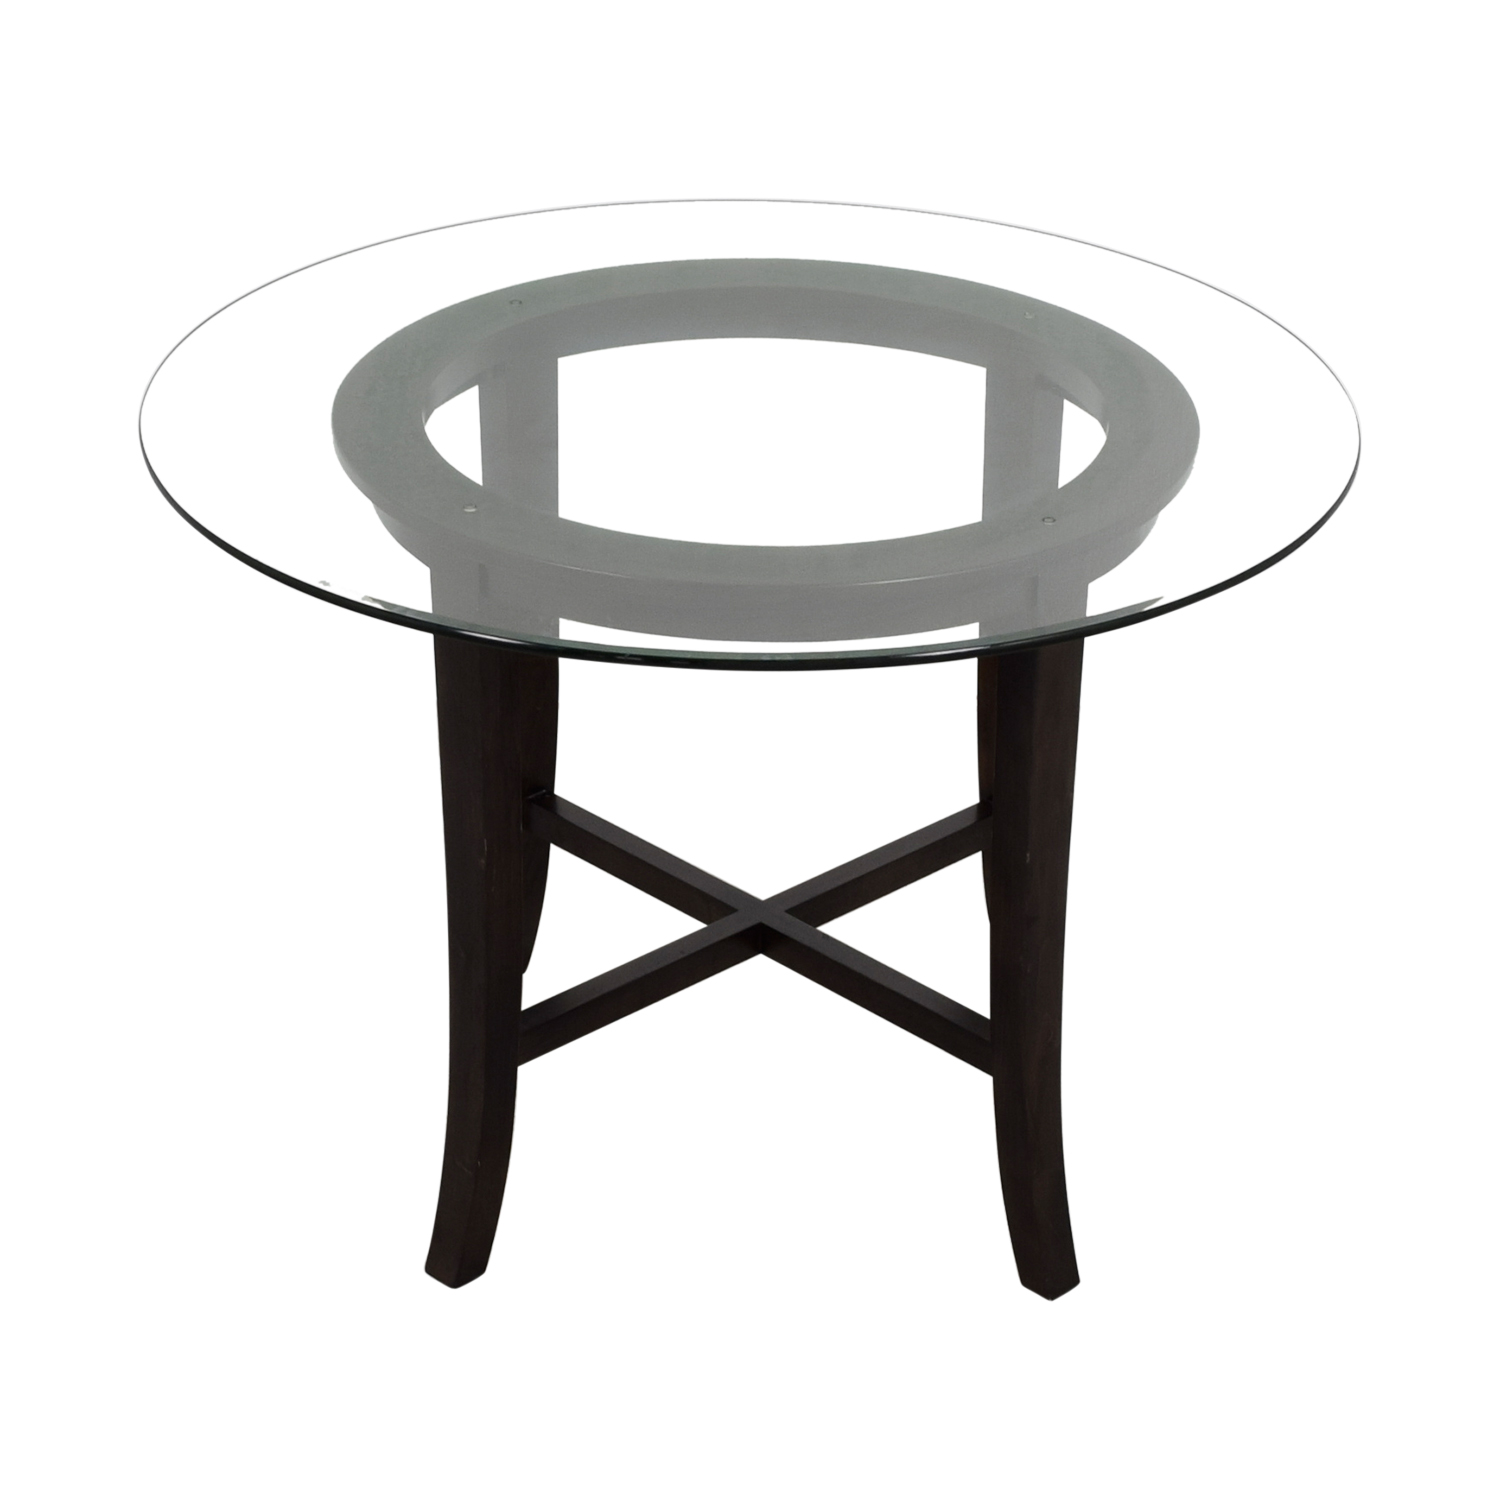 Crate & Barrel Crate & Barrel Halo Ebony Dining Table coupon